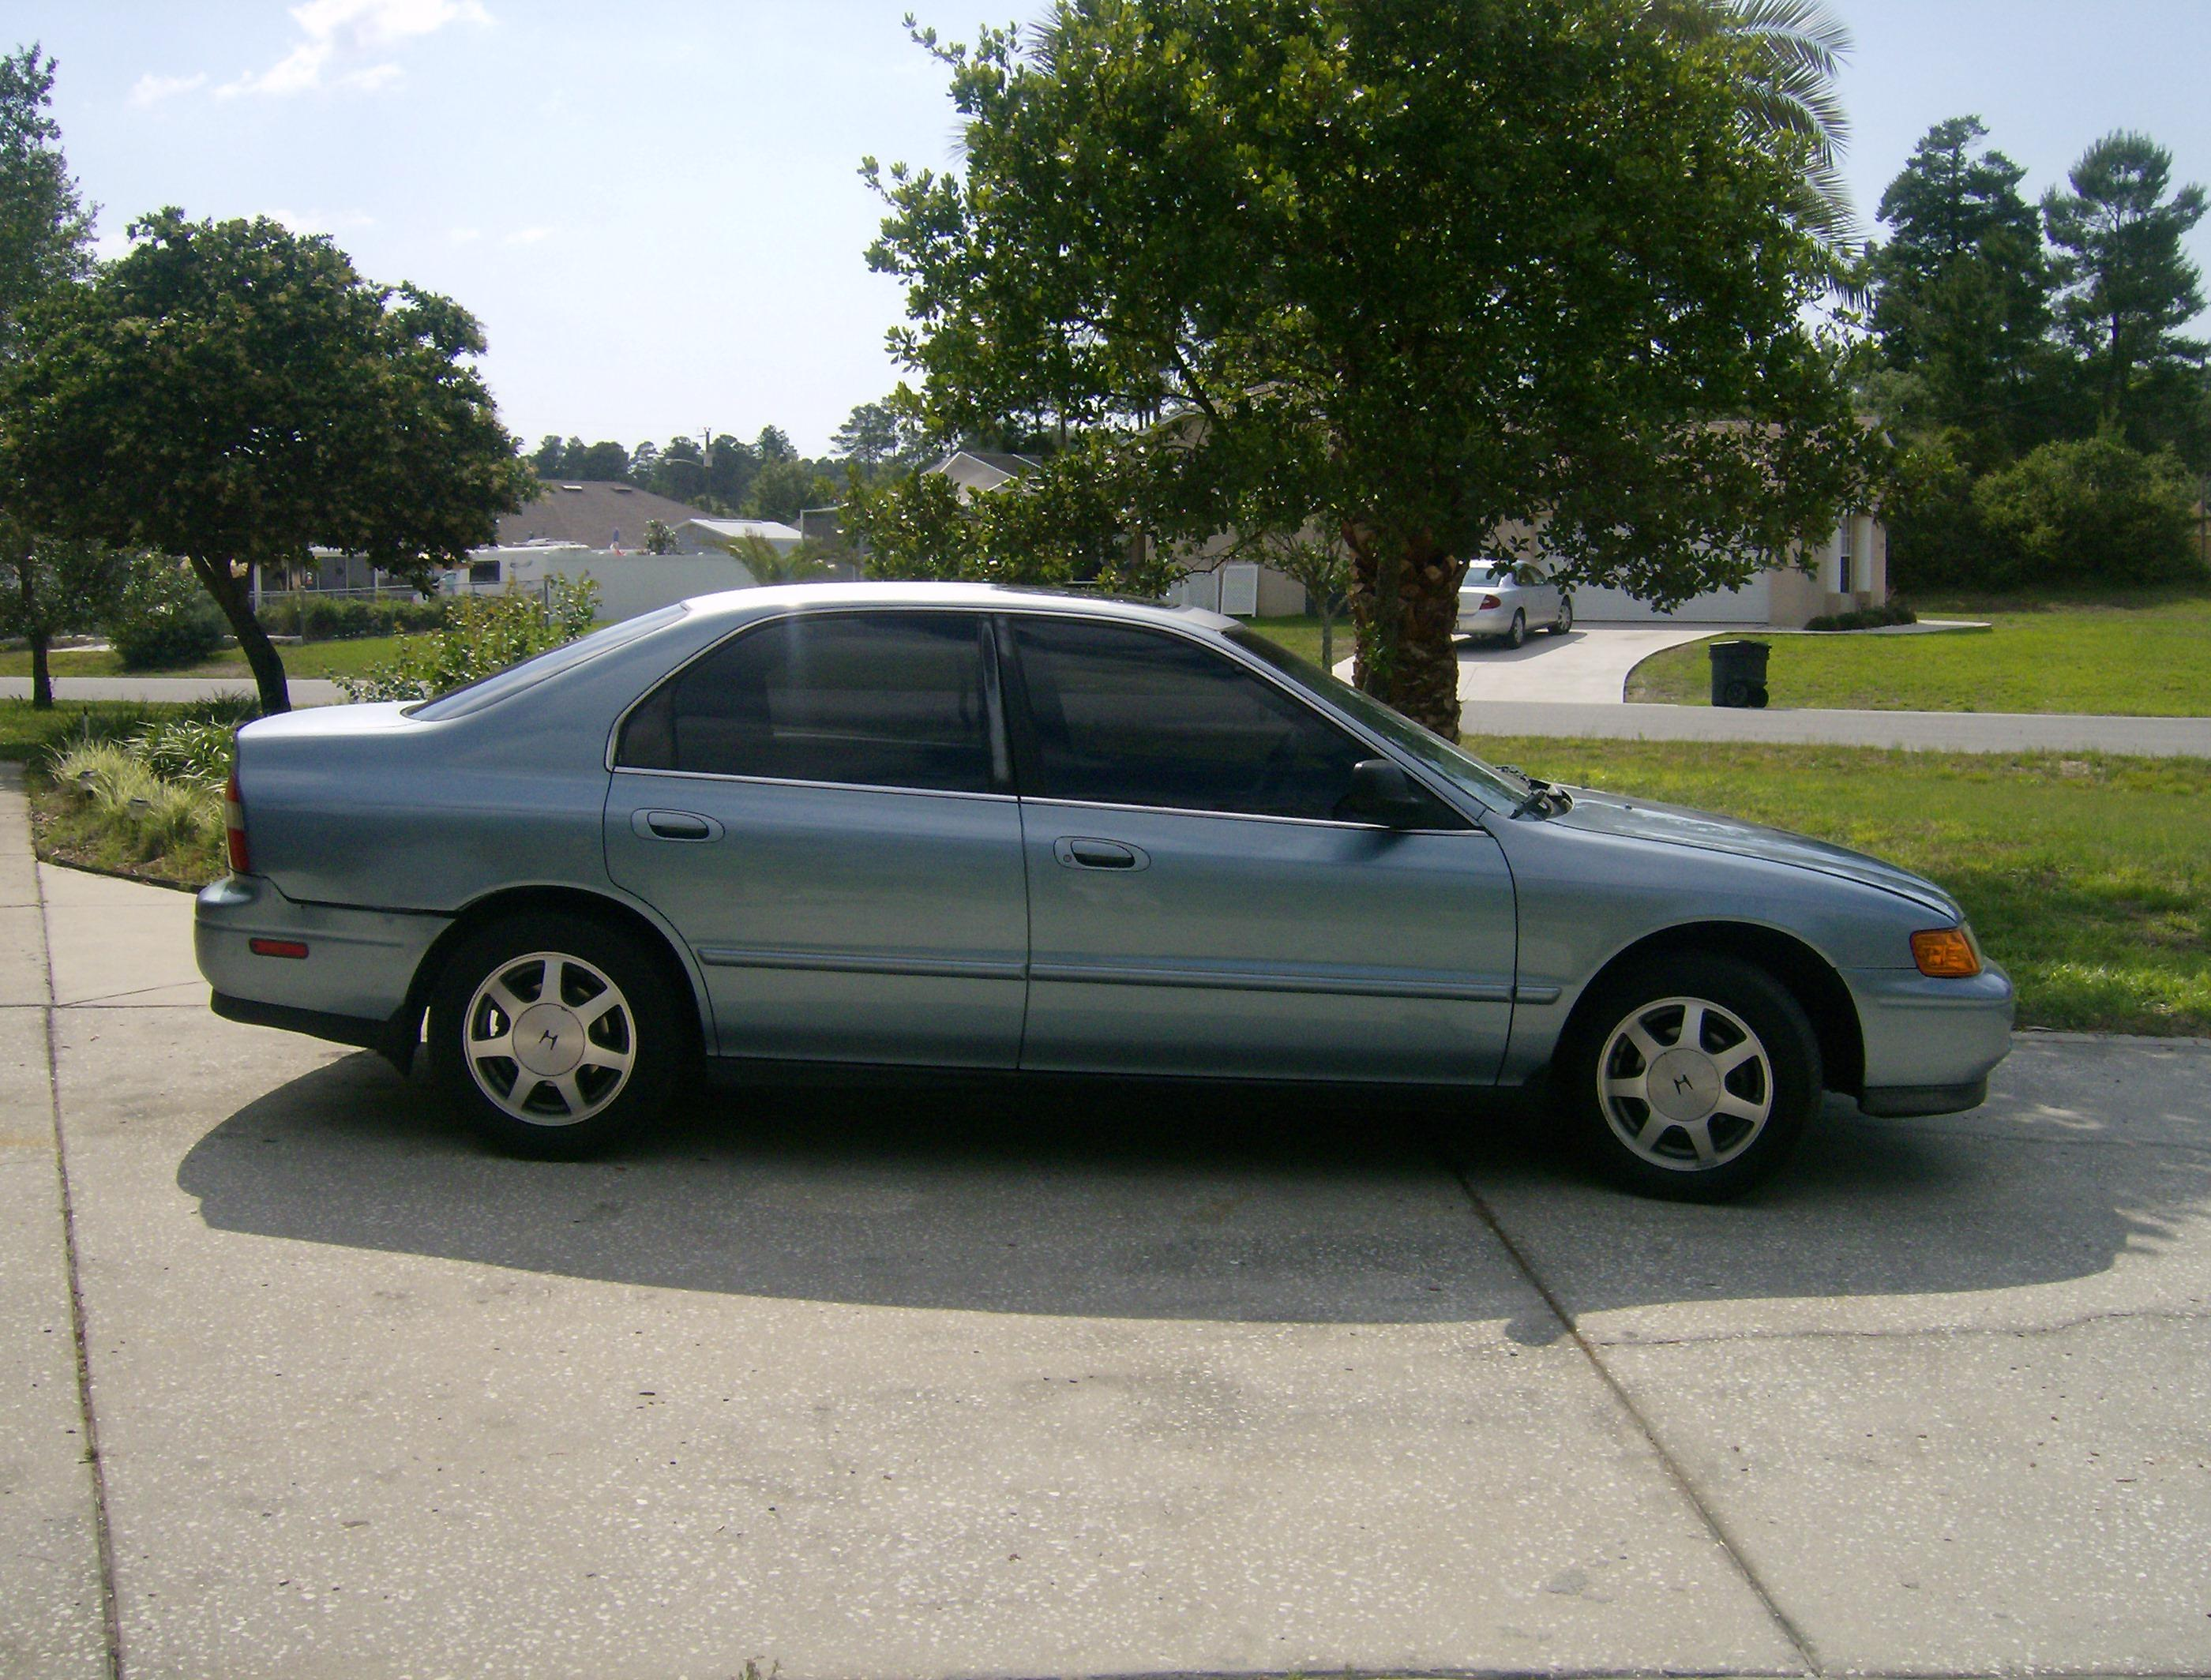 purafiebre1 1995 honda accordex sedan 4d specs photos modification info at cardomain cardomain